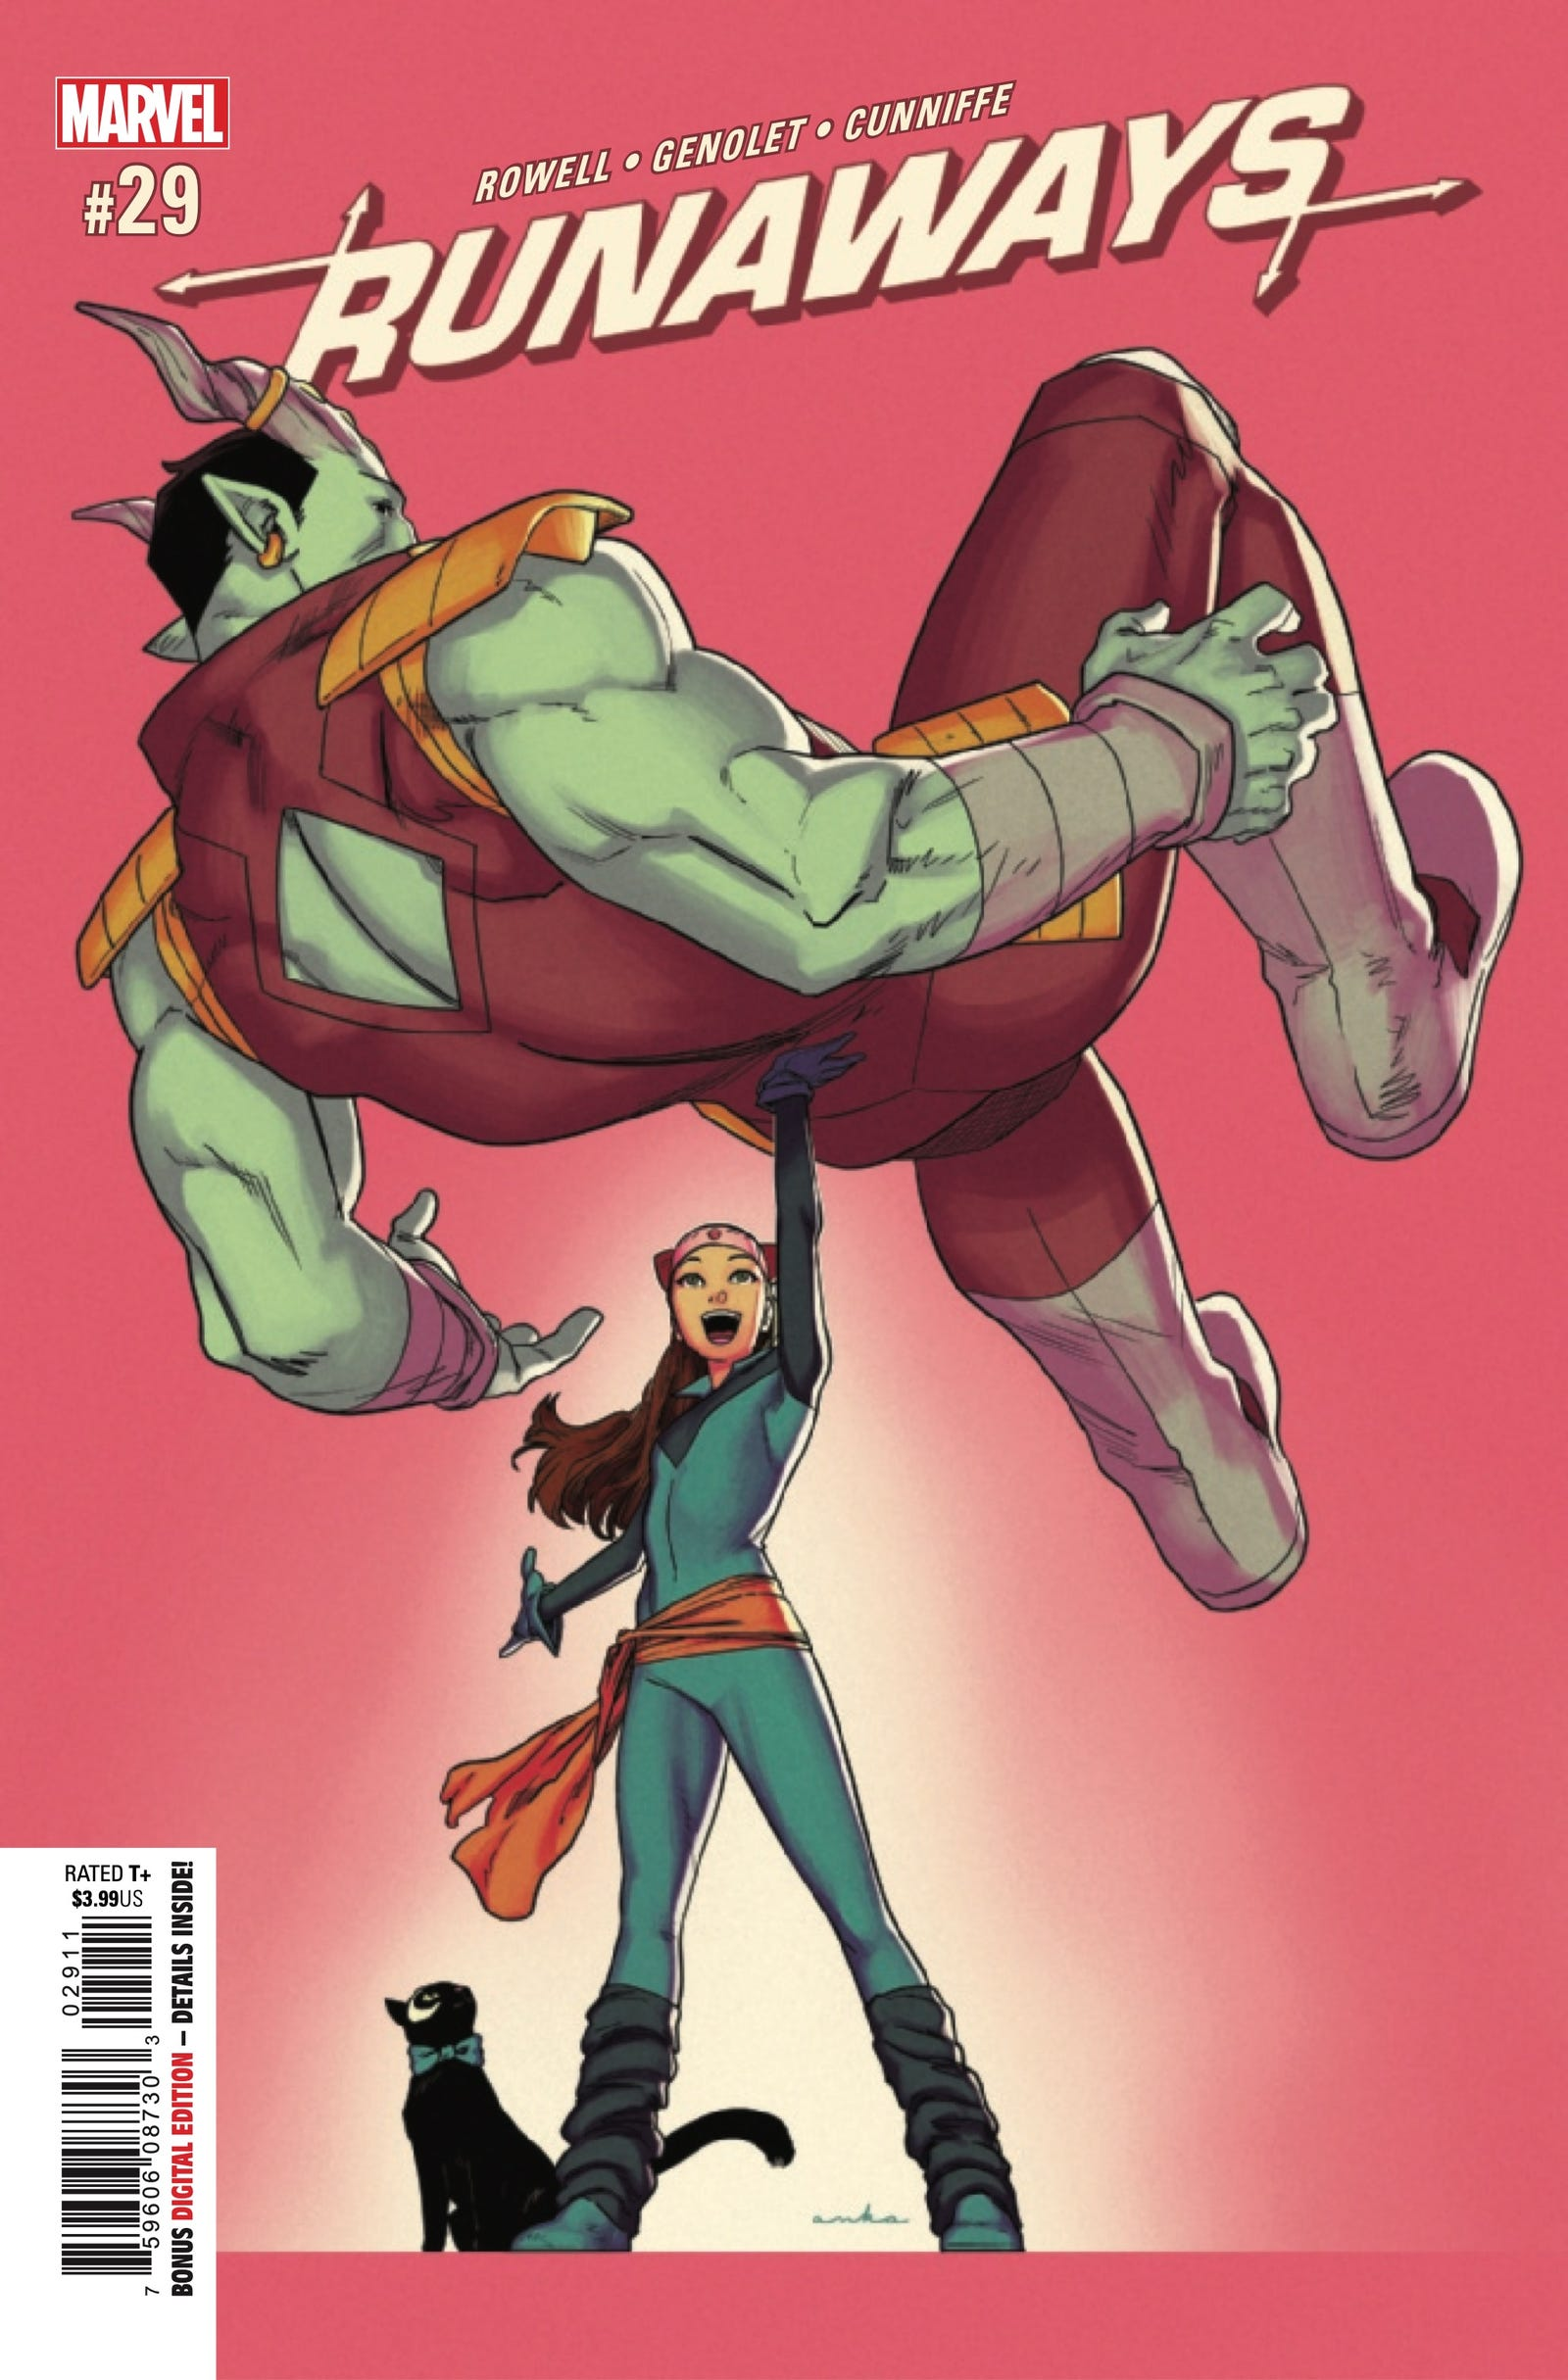 Cover by Kris Anka